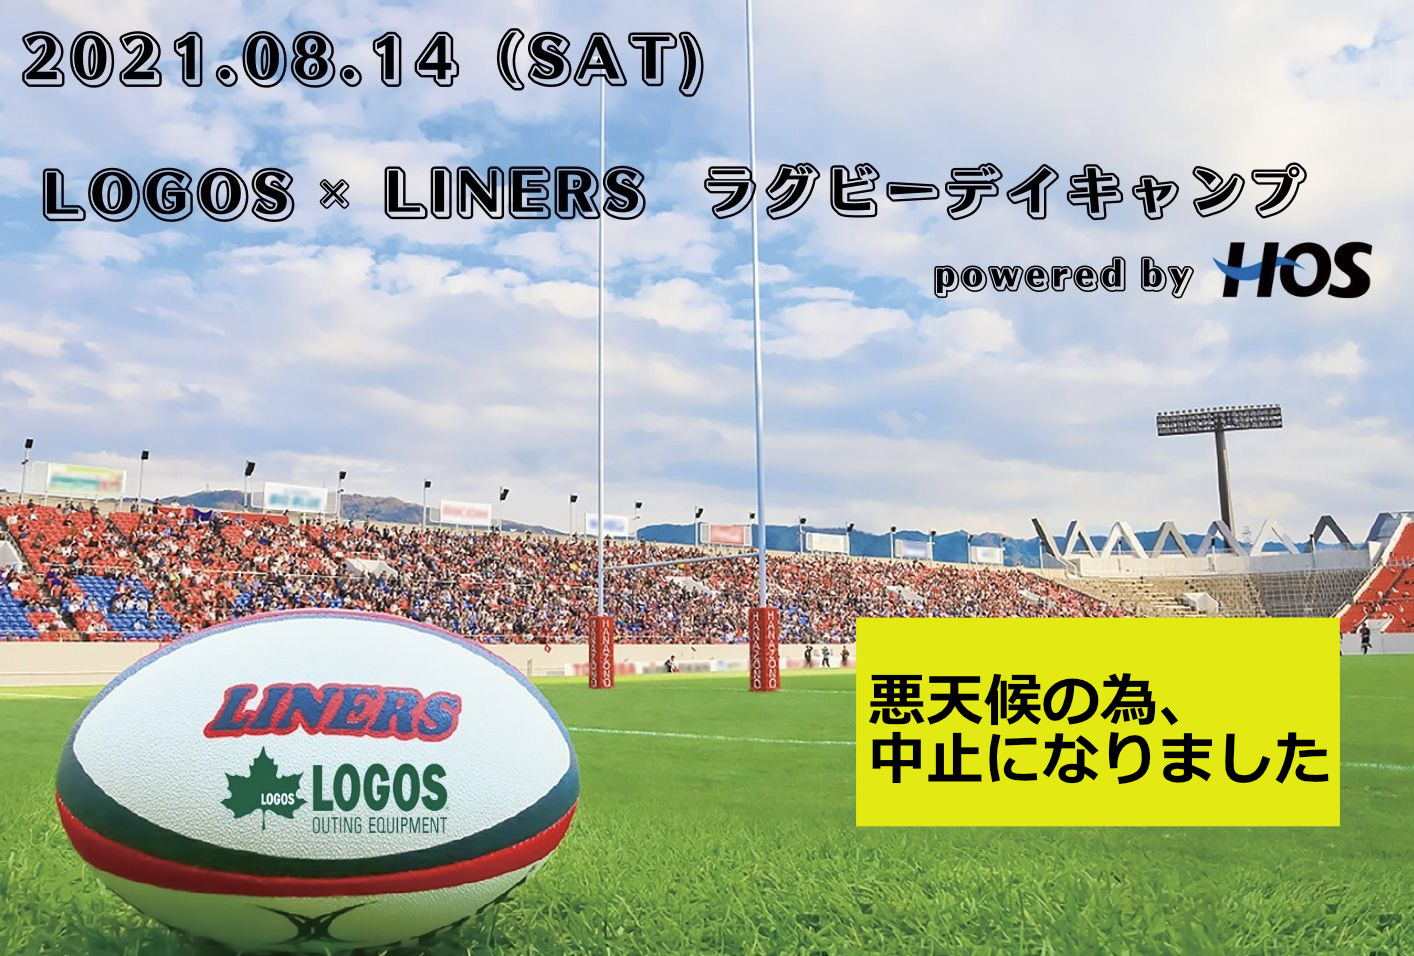 LOGOS × LINERS ラグビーデイキャンプ powered by HOS